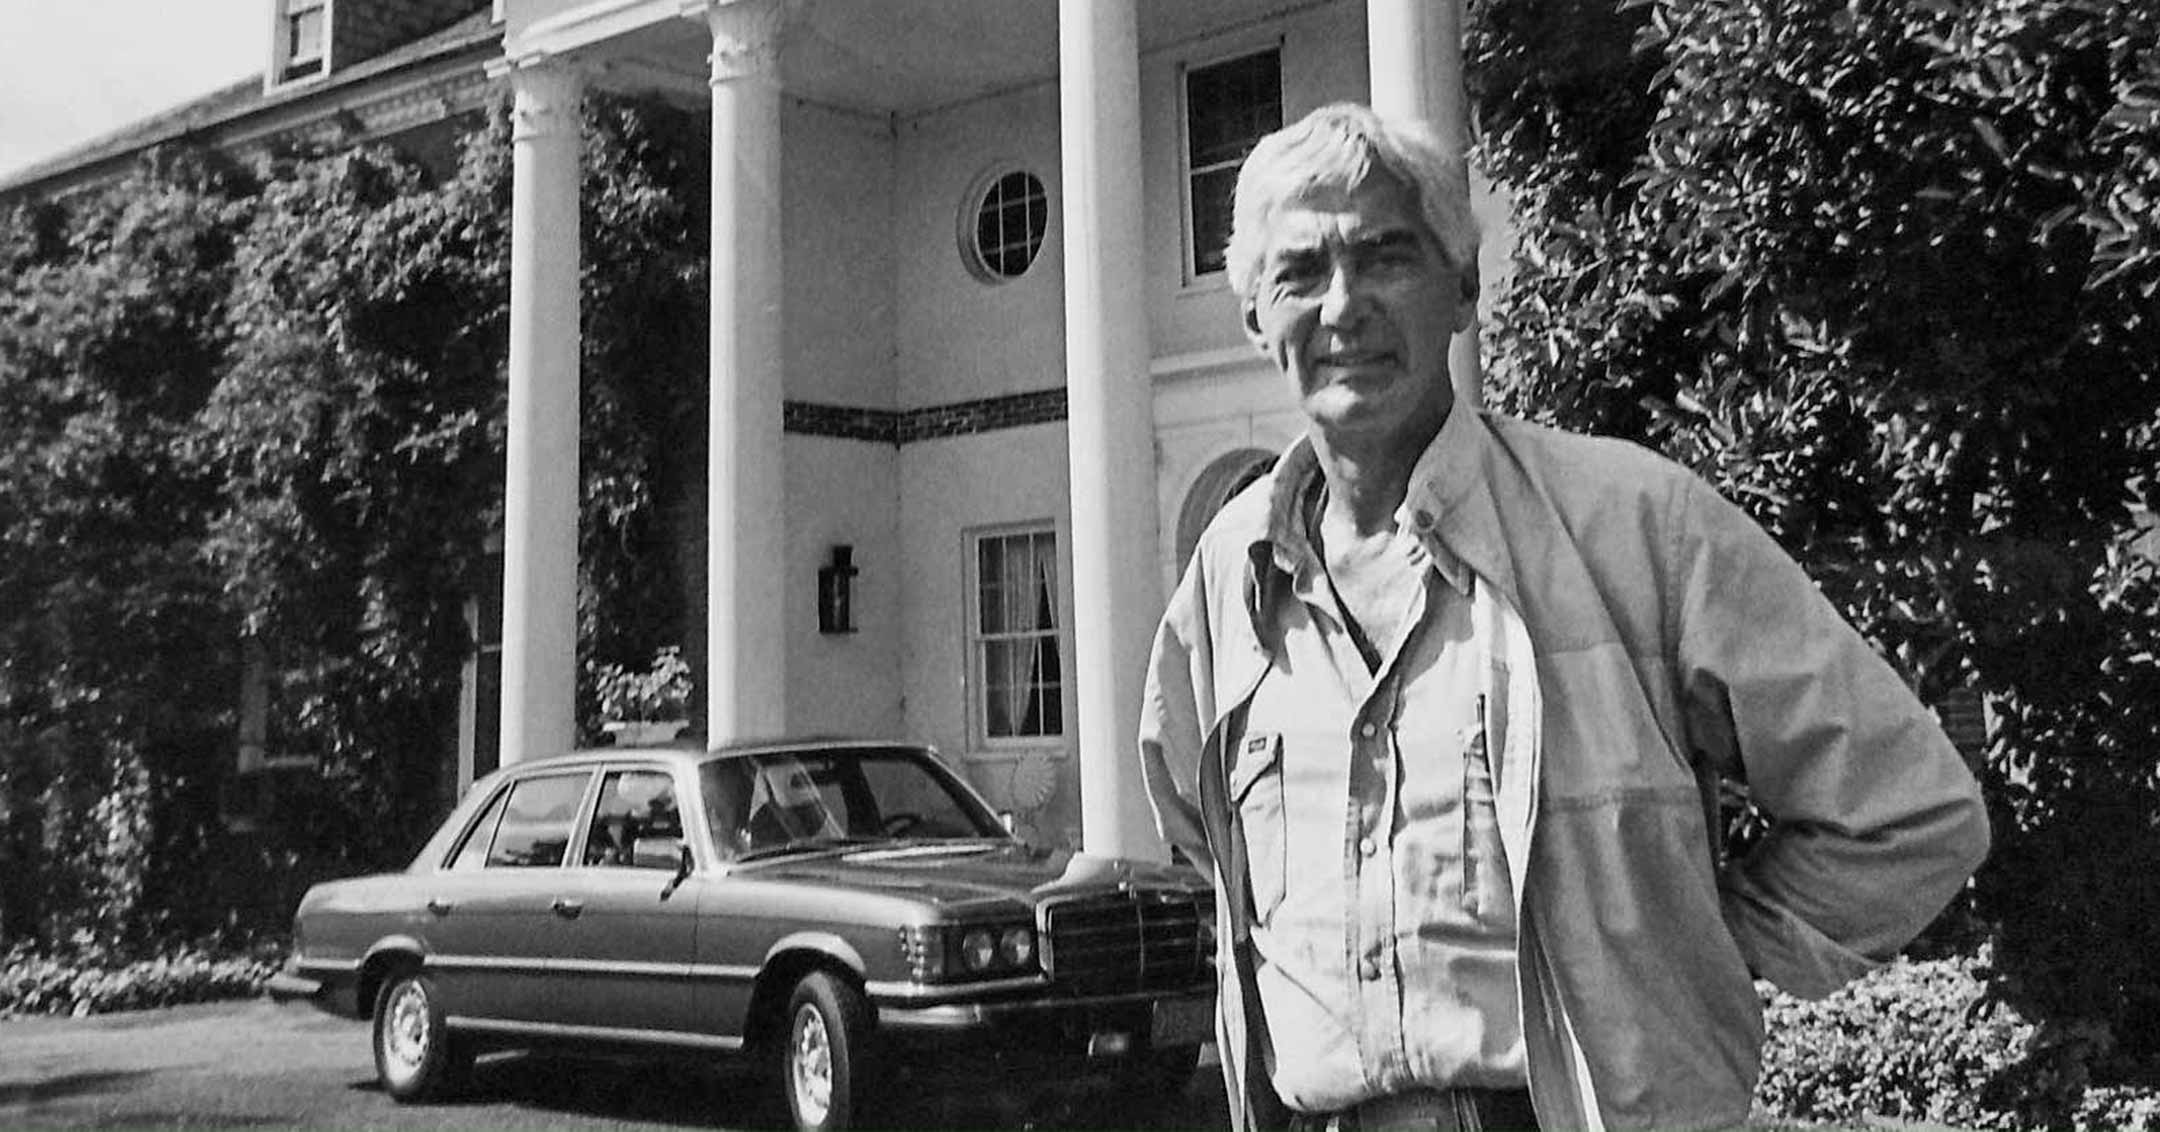 John DeLorean at NJ mansion | DeLoreanDirectory.com